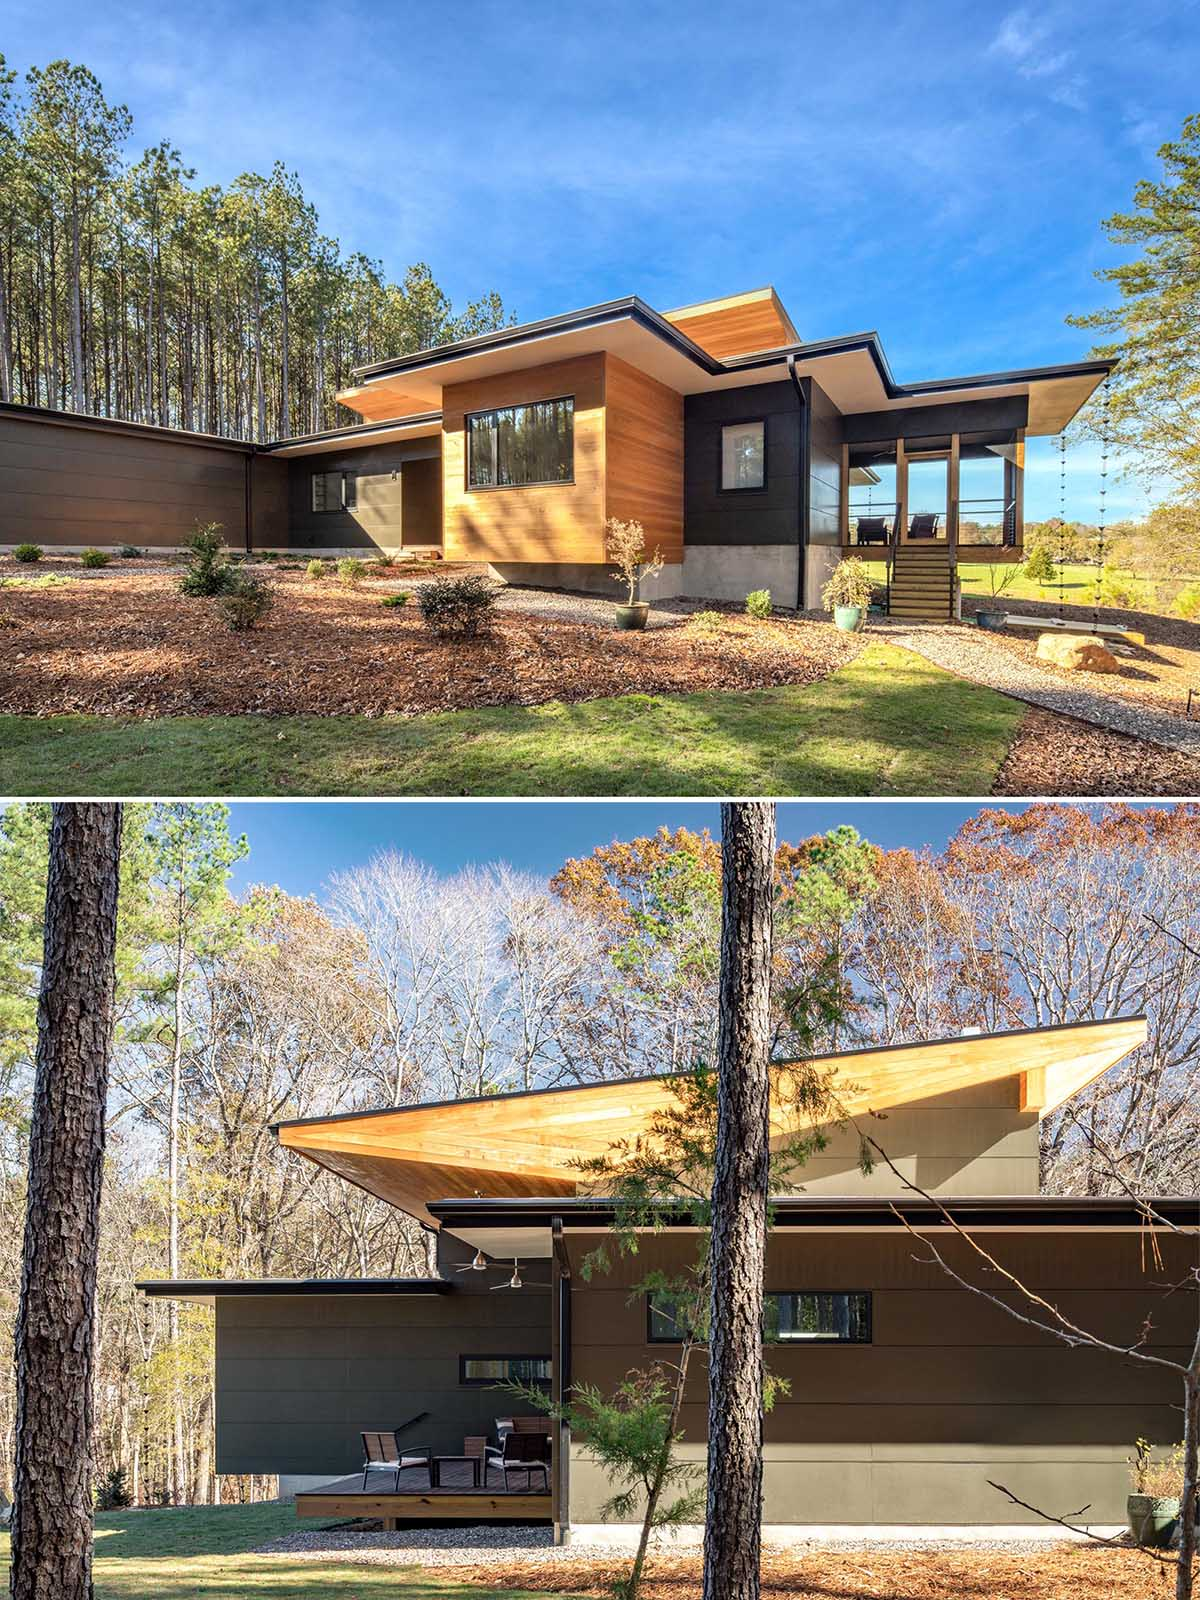 A modern home with wood accents and a roof designed for solar panels.